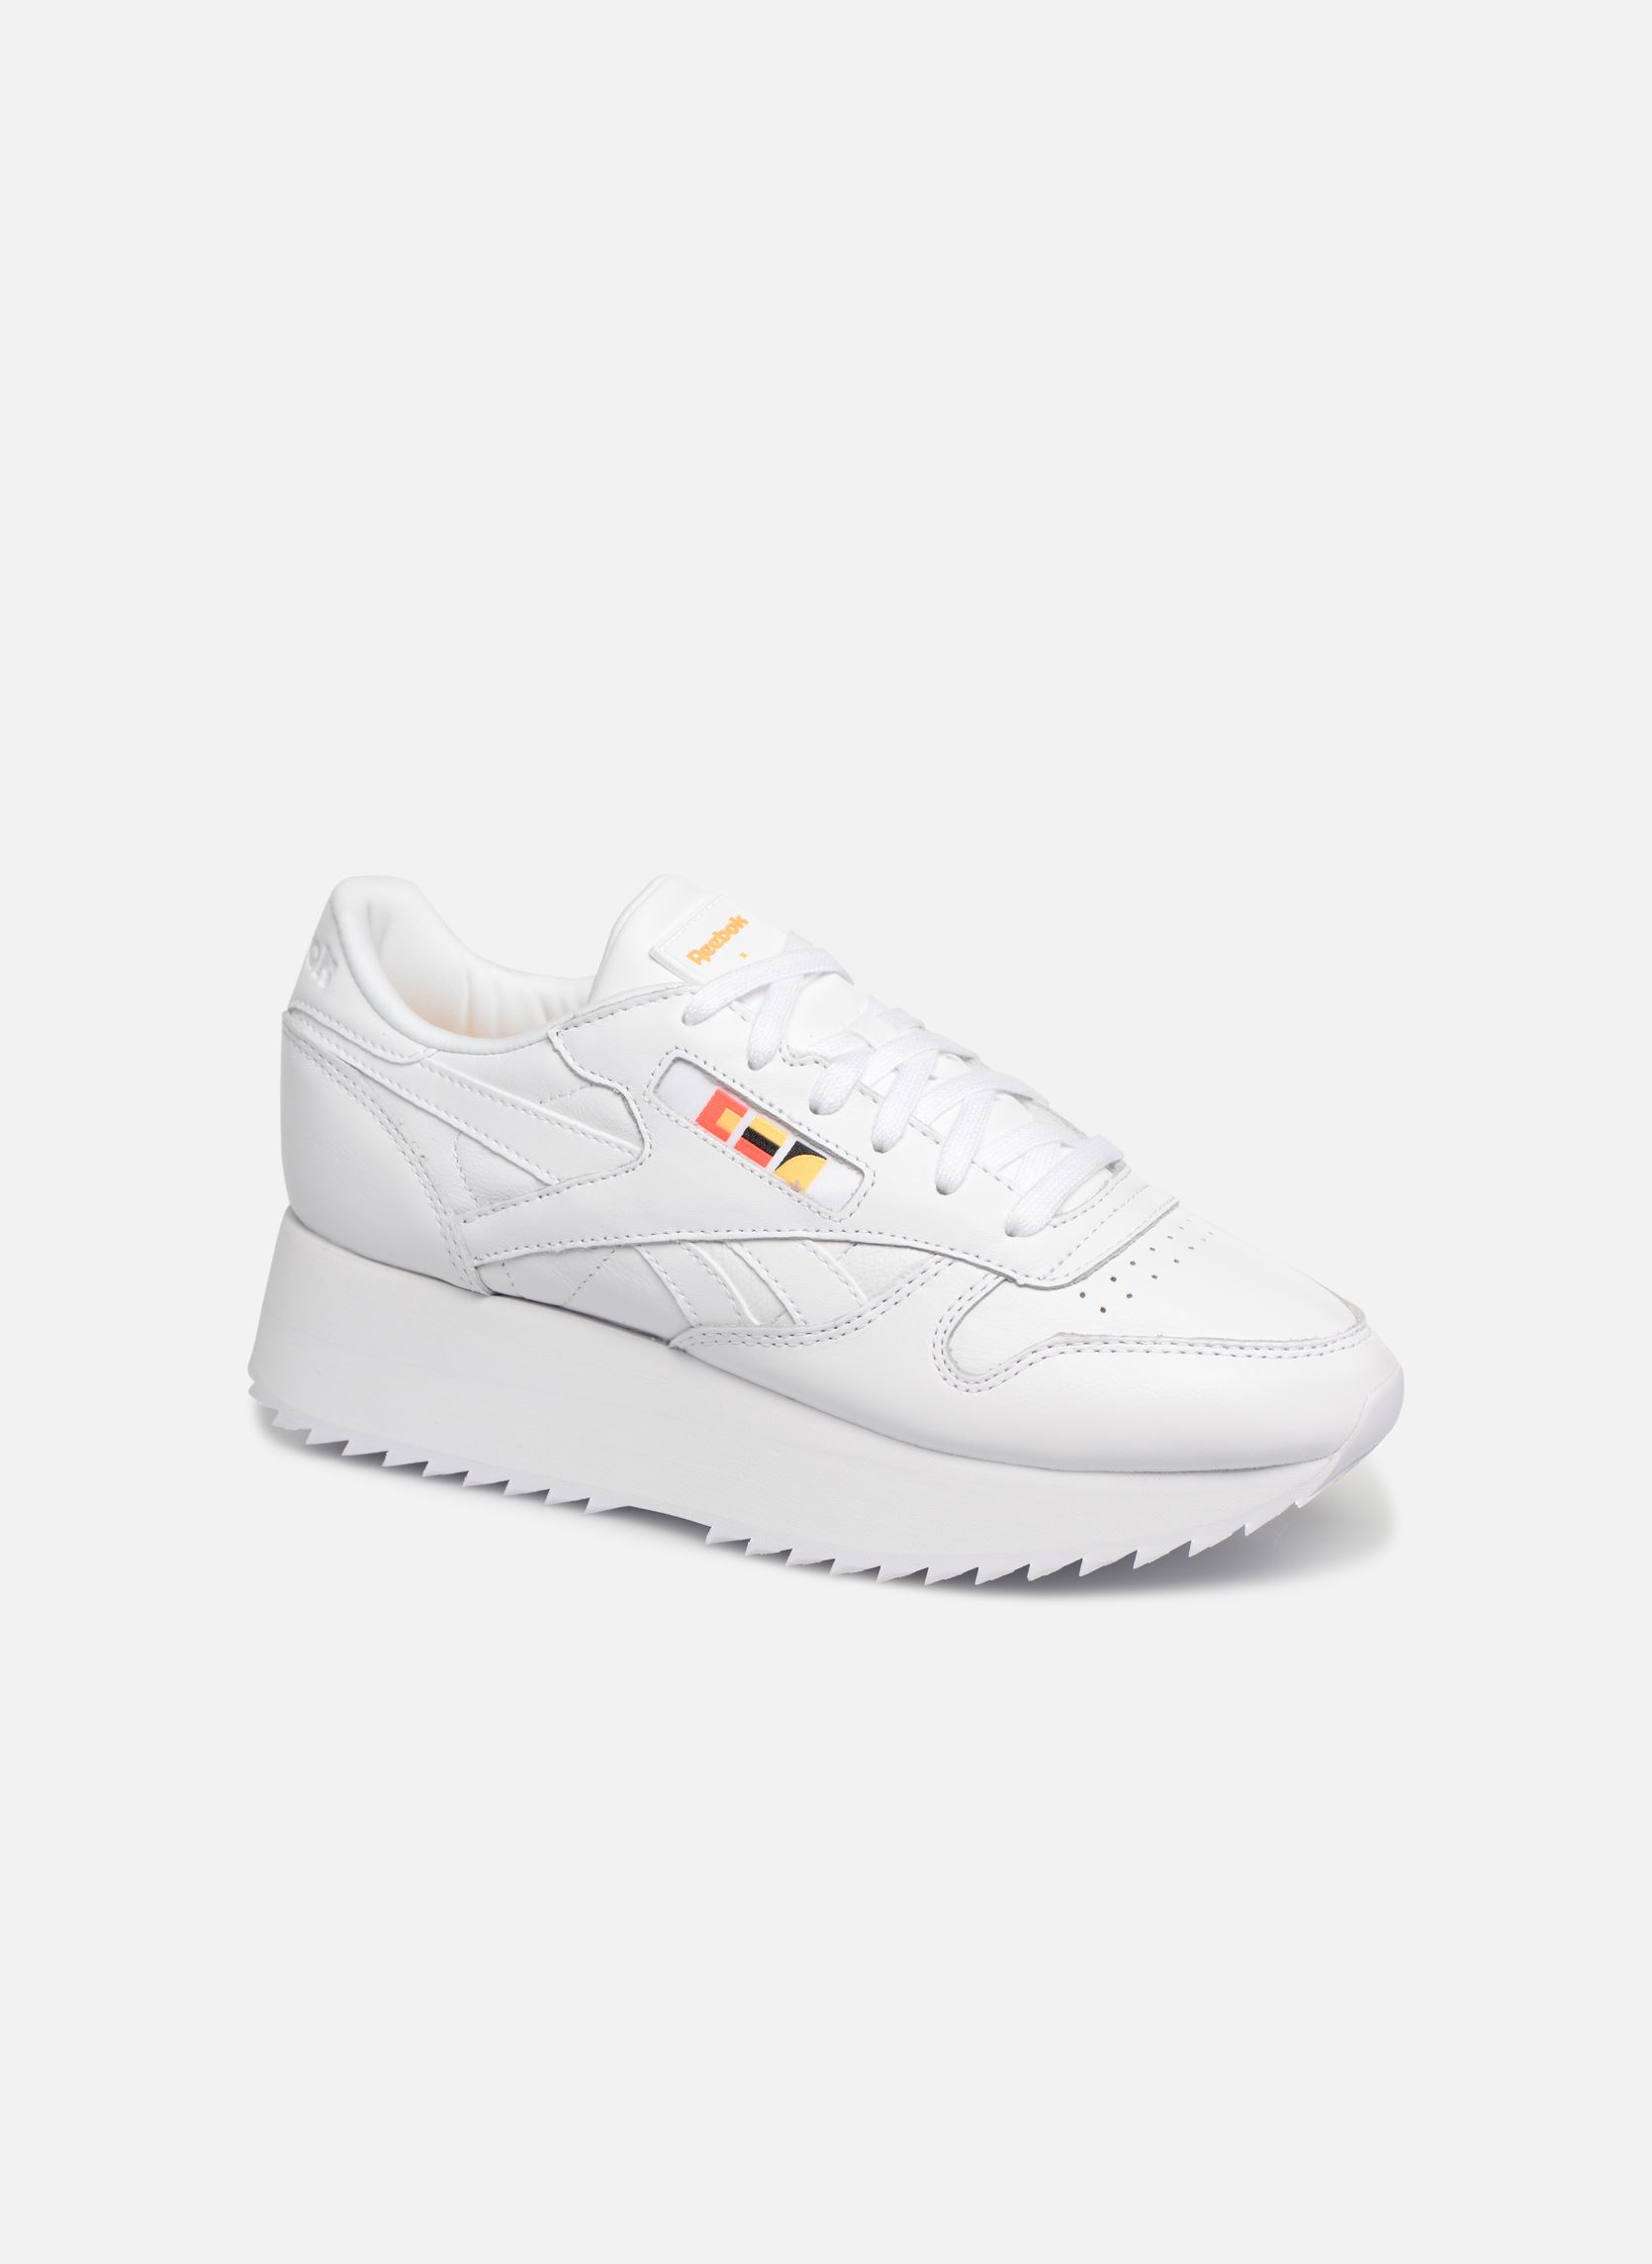 Details zu Damen Reebok Classic Leather Double Sneaker Weiß